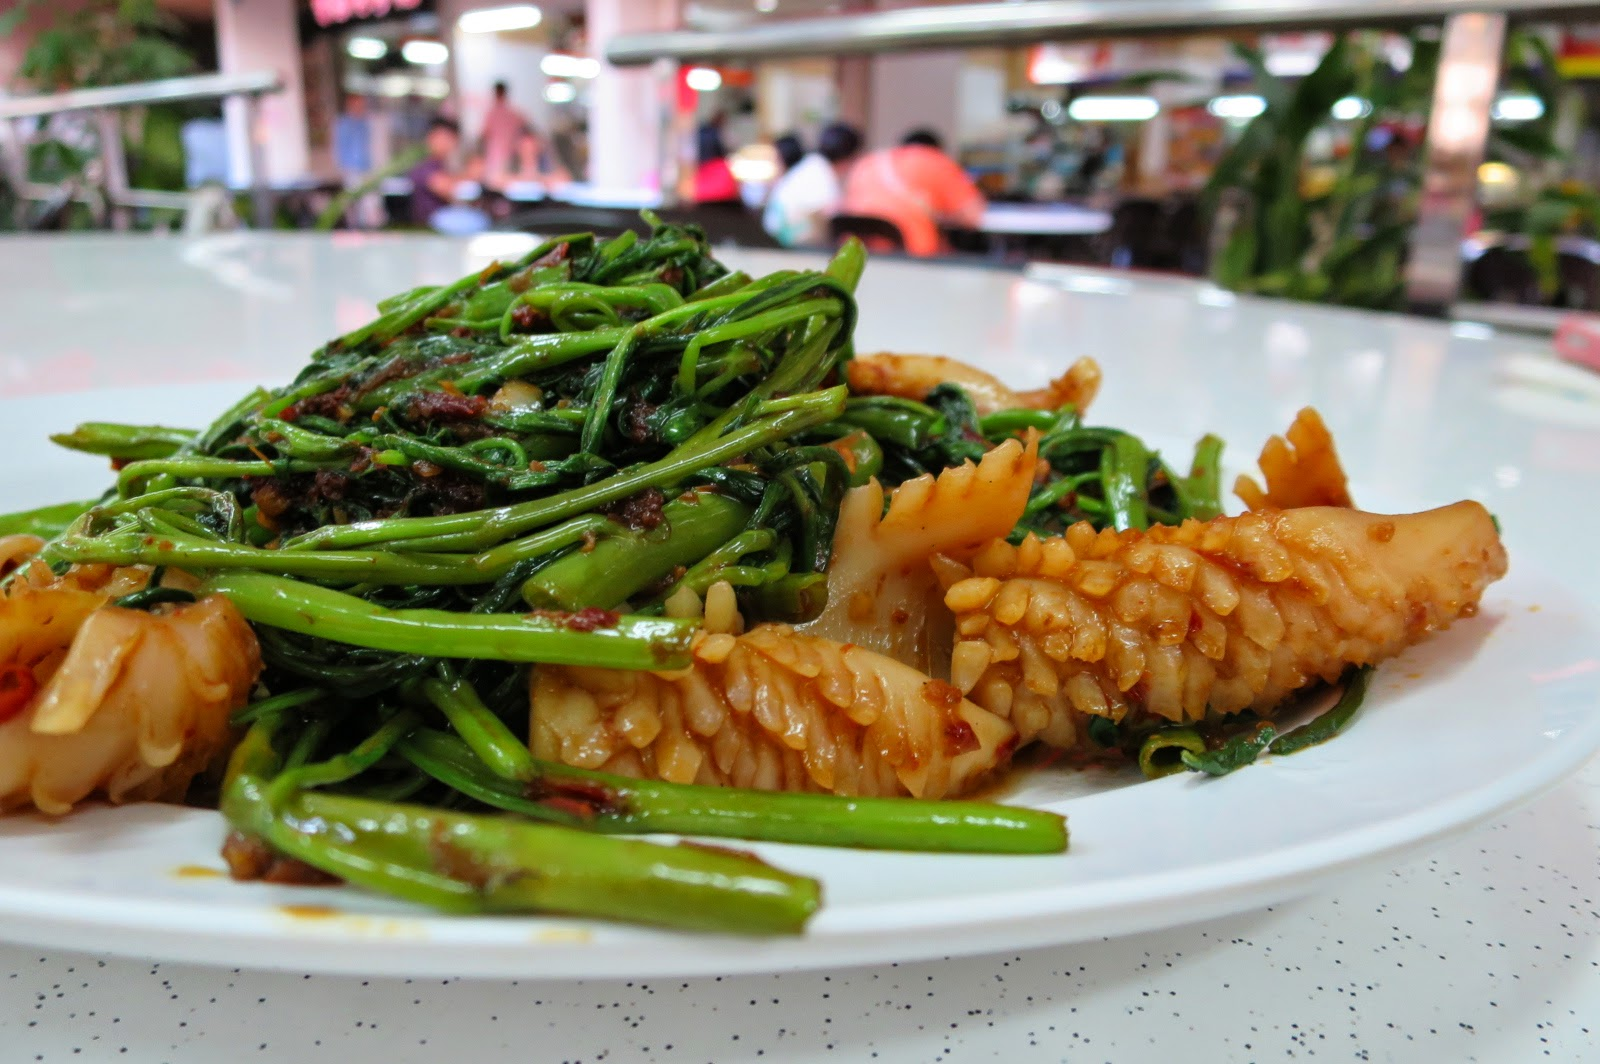 kang kong and cuttlefish....check out how they've scored the cuttlefish